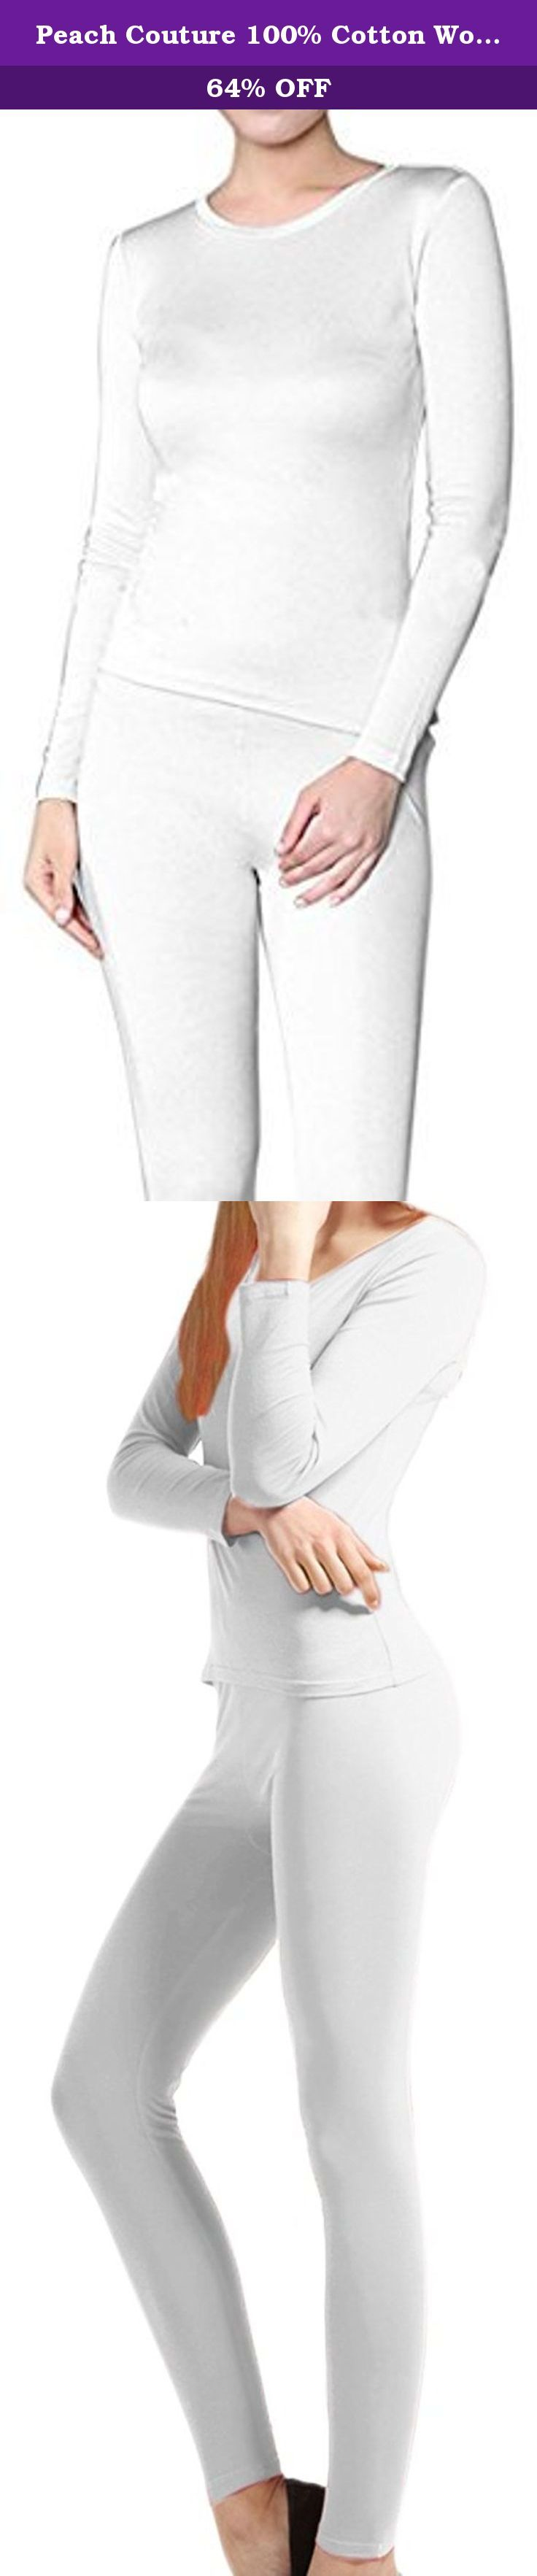 Peach Couture 100% Cotton Womens 2 Pc Long John Thermal Pajamas -Top & Bottom (XL, White). Peach Couture's Jersey Knit 2 Piece 100% Cotton Pajama/Underwear Set are a must have this winter, whether you're curled up on the couch drinking hot chocolate, racing down a mountain on your snowboard, or are out and about doing some holiday shopping. Their effective (Whatever knit pattern) design will keep you toasty. They will fit easily underneath your clothes for a comfortable added layer of…